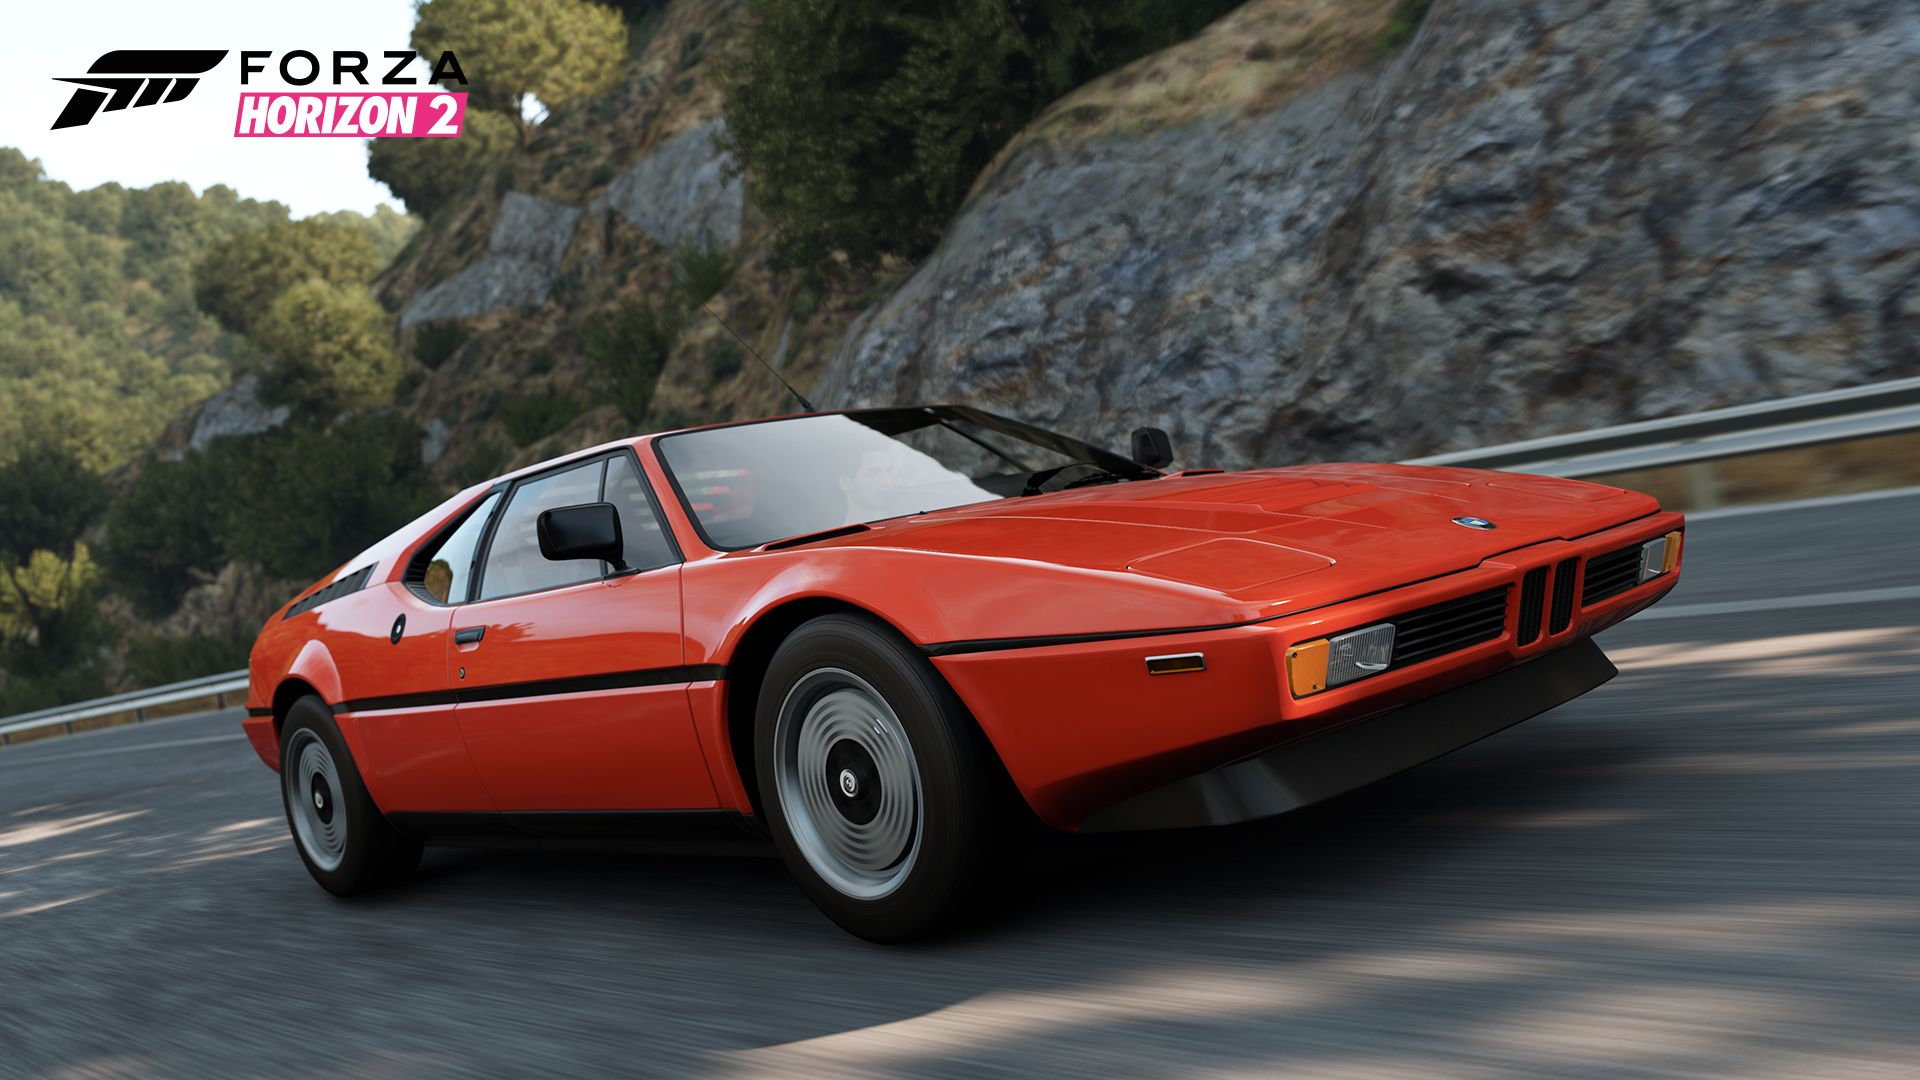 Forza Horizon Xbox One Demo More Cars Achievements Announced